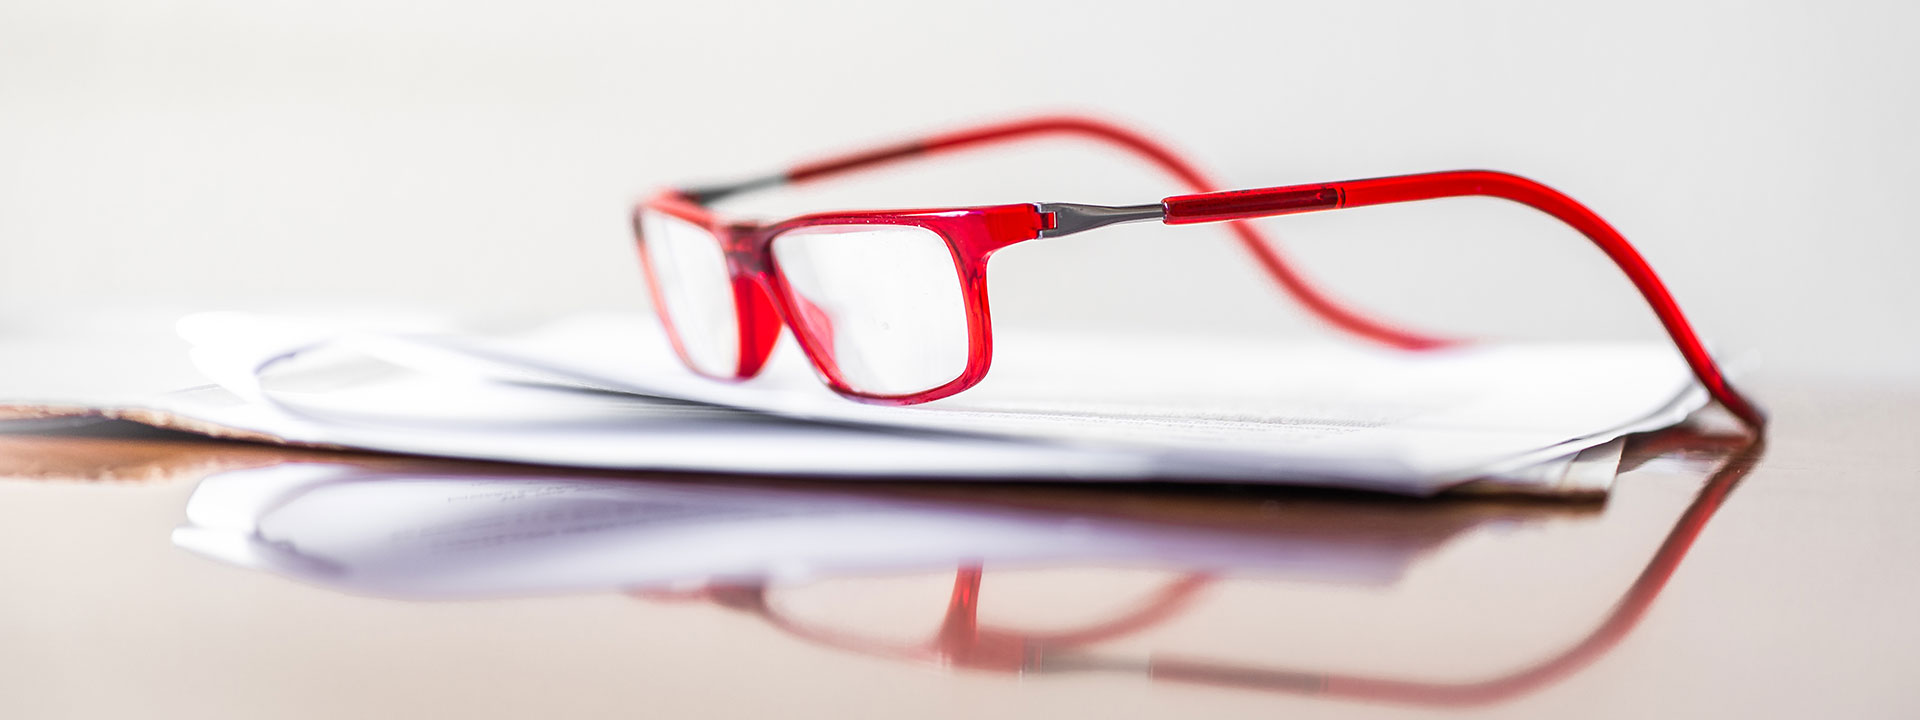 gabinete-de-la-orden-papers-glasses